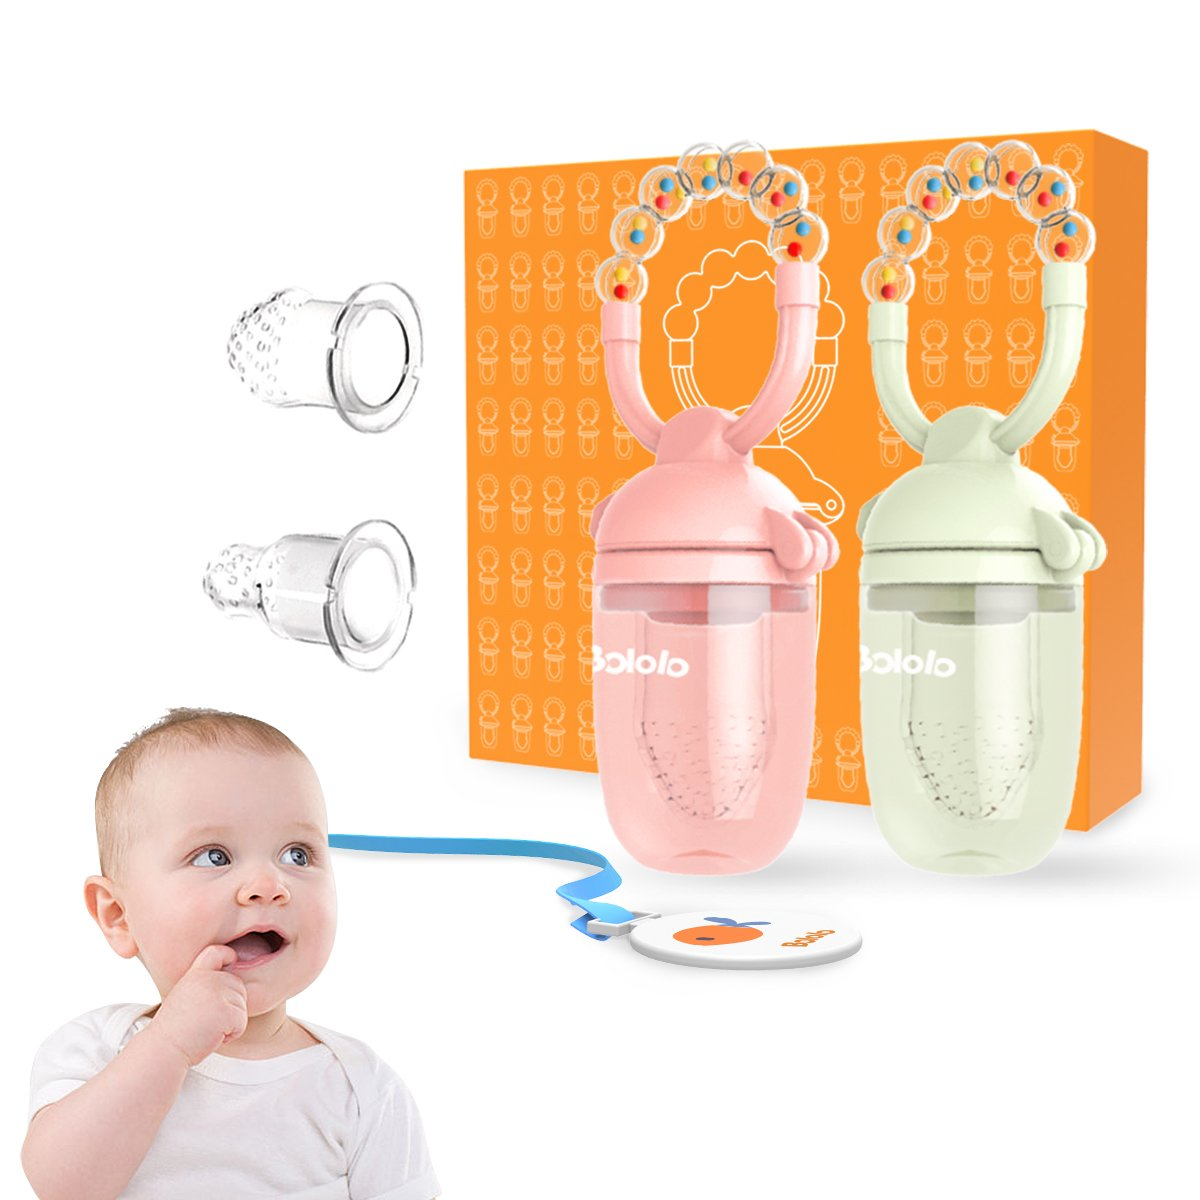 Baby Food Feeder/Fruit Feeder Pacifier (2 Pack) Baby Pacifier Teething Toys with Rotating Rattle Design Include Two Free Replacement Silicone Mesh by Bololo